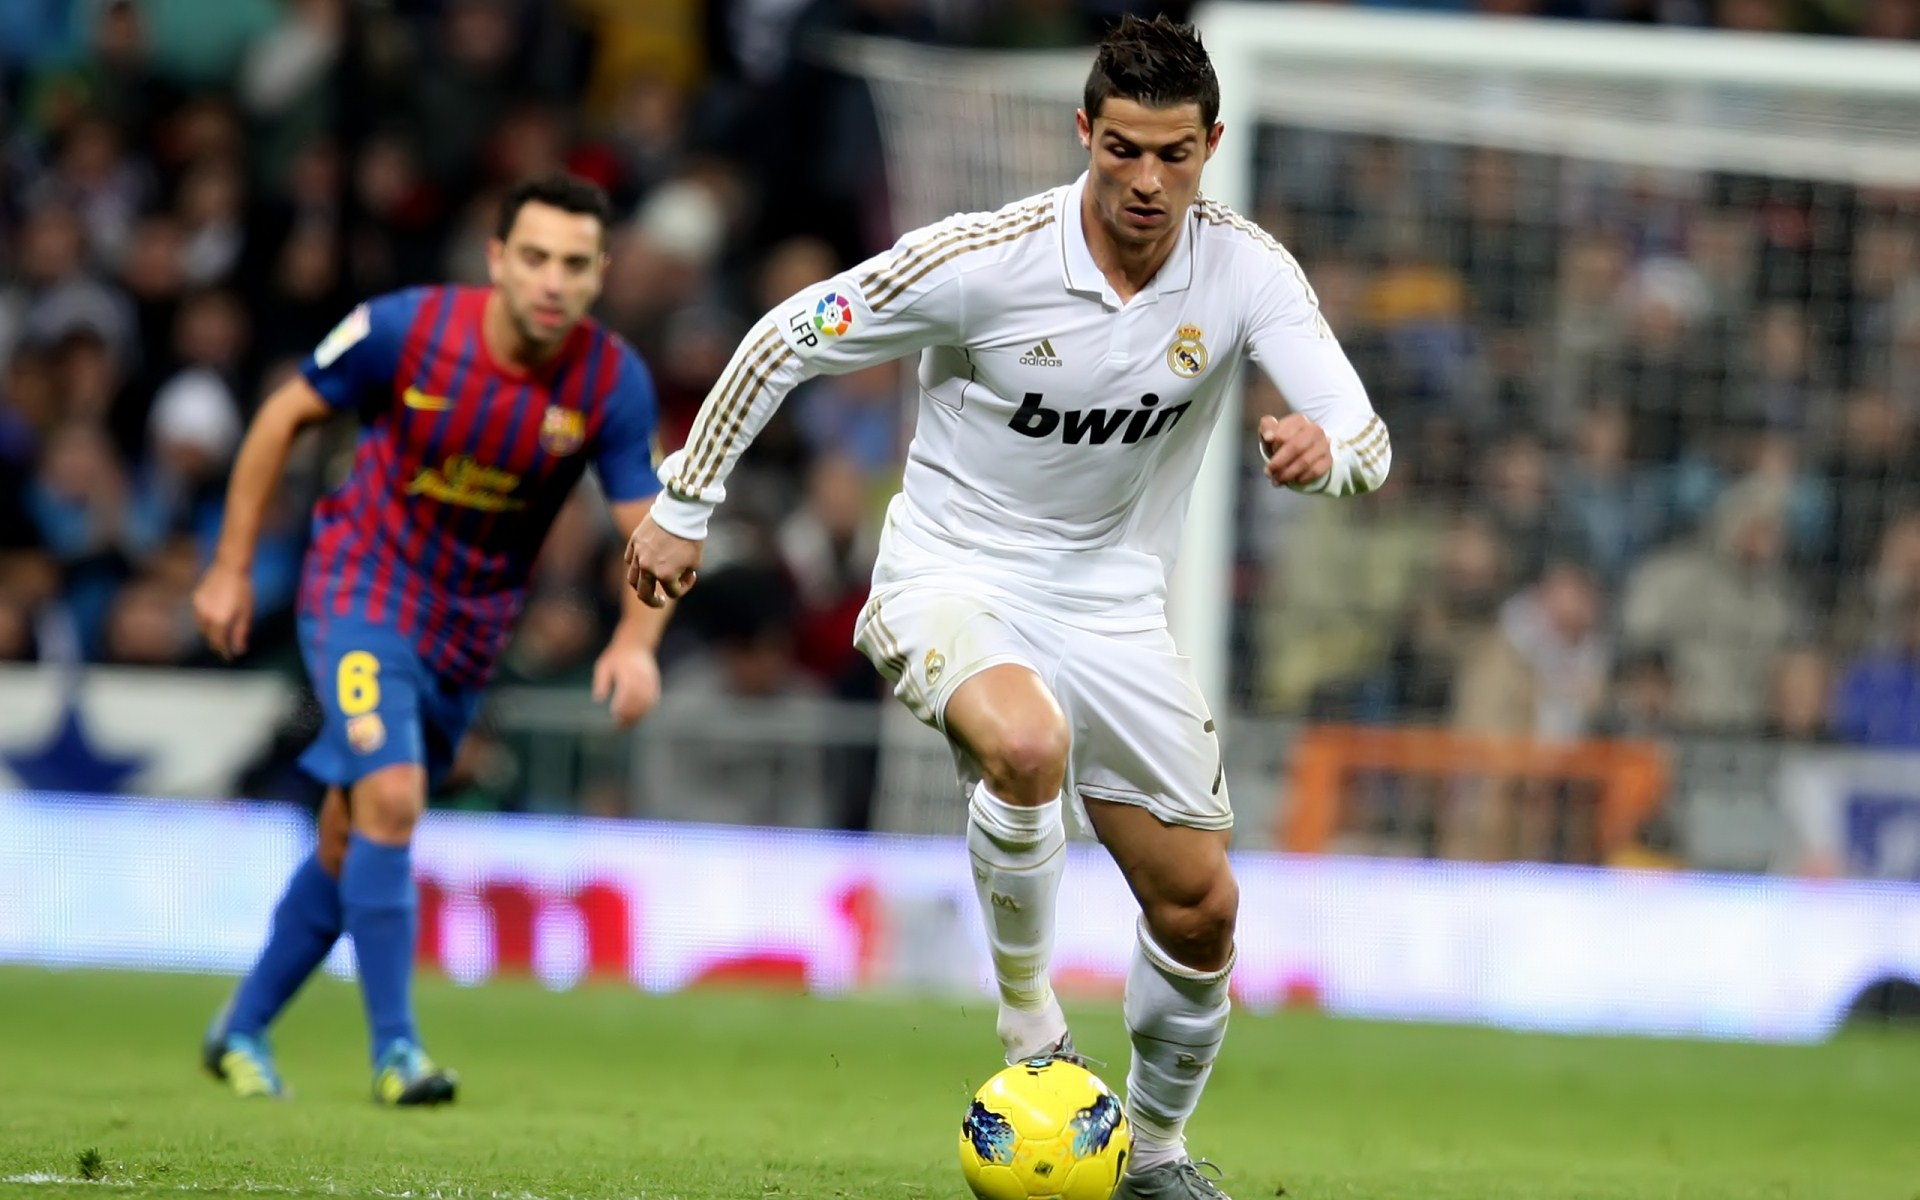 Art Of Cristiano Ronaldo Fans Wallpaper Sport Soccer: Cristiano-ronaldo HD Wallpaper